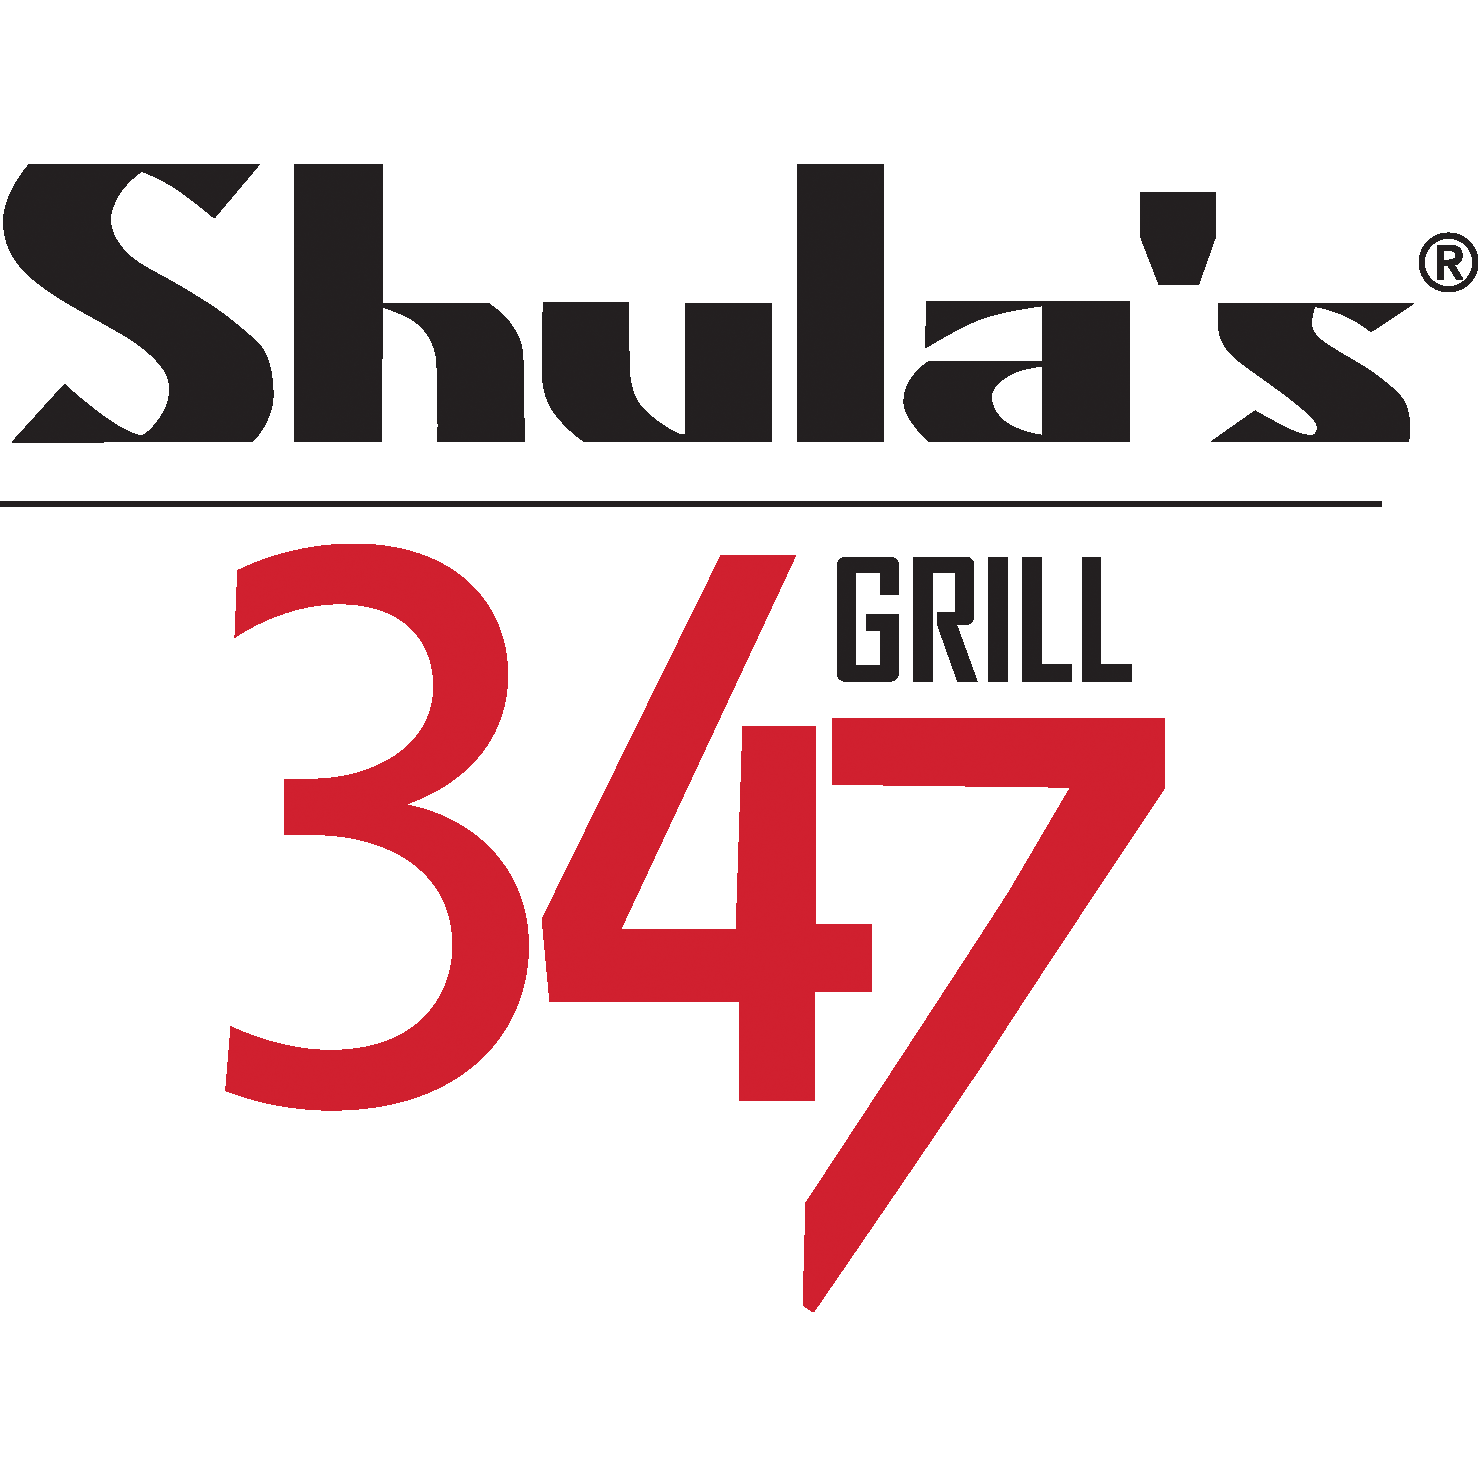 Shula's 347 Grill image 0